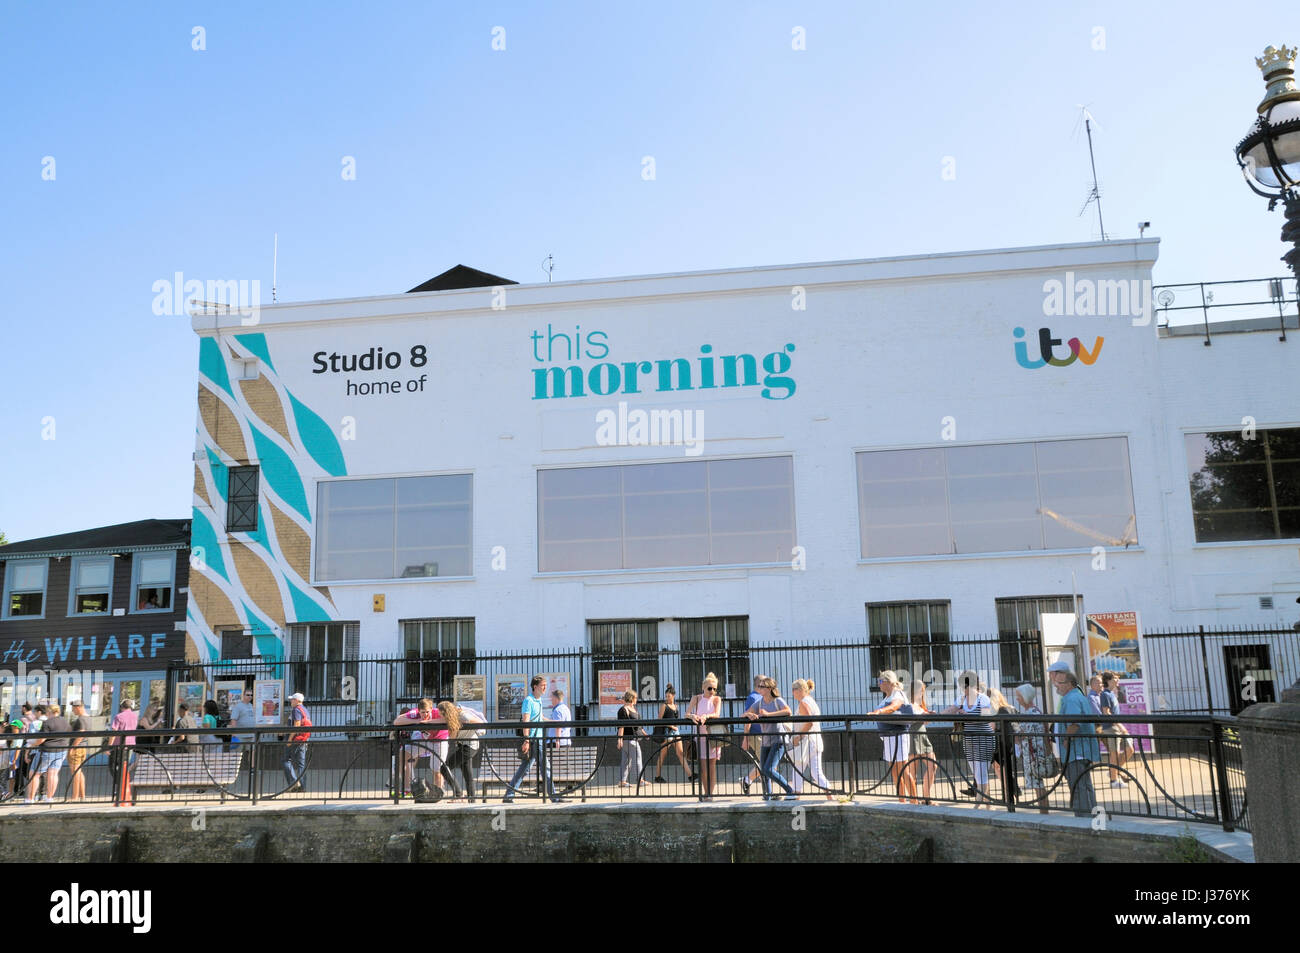 Studio 8, Home to ITV's This Morning television show, South Bank, London, UK - Stock Image